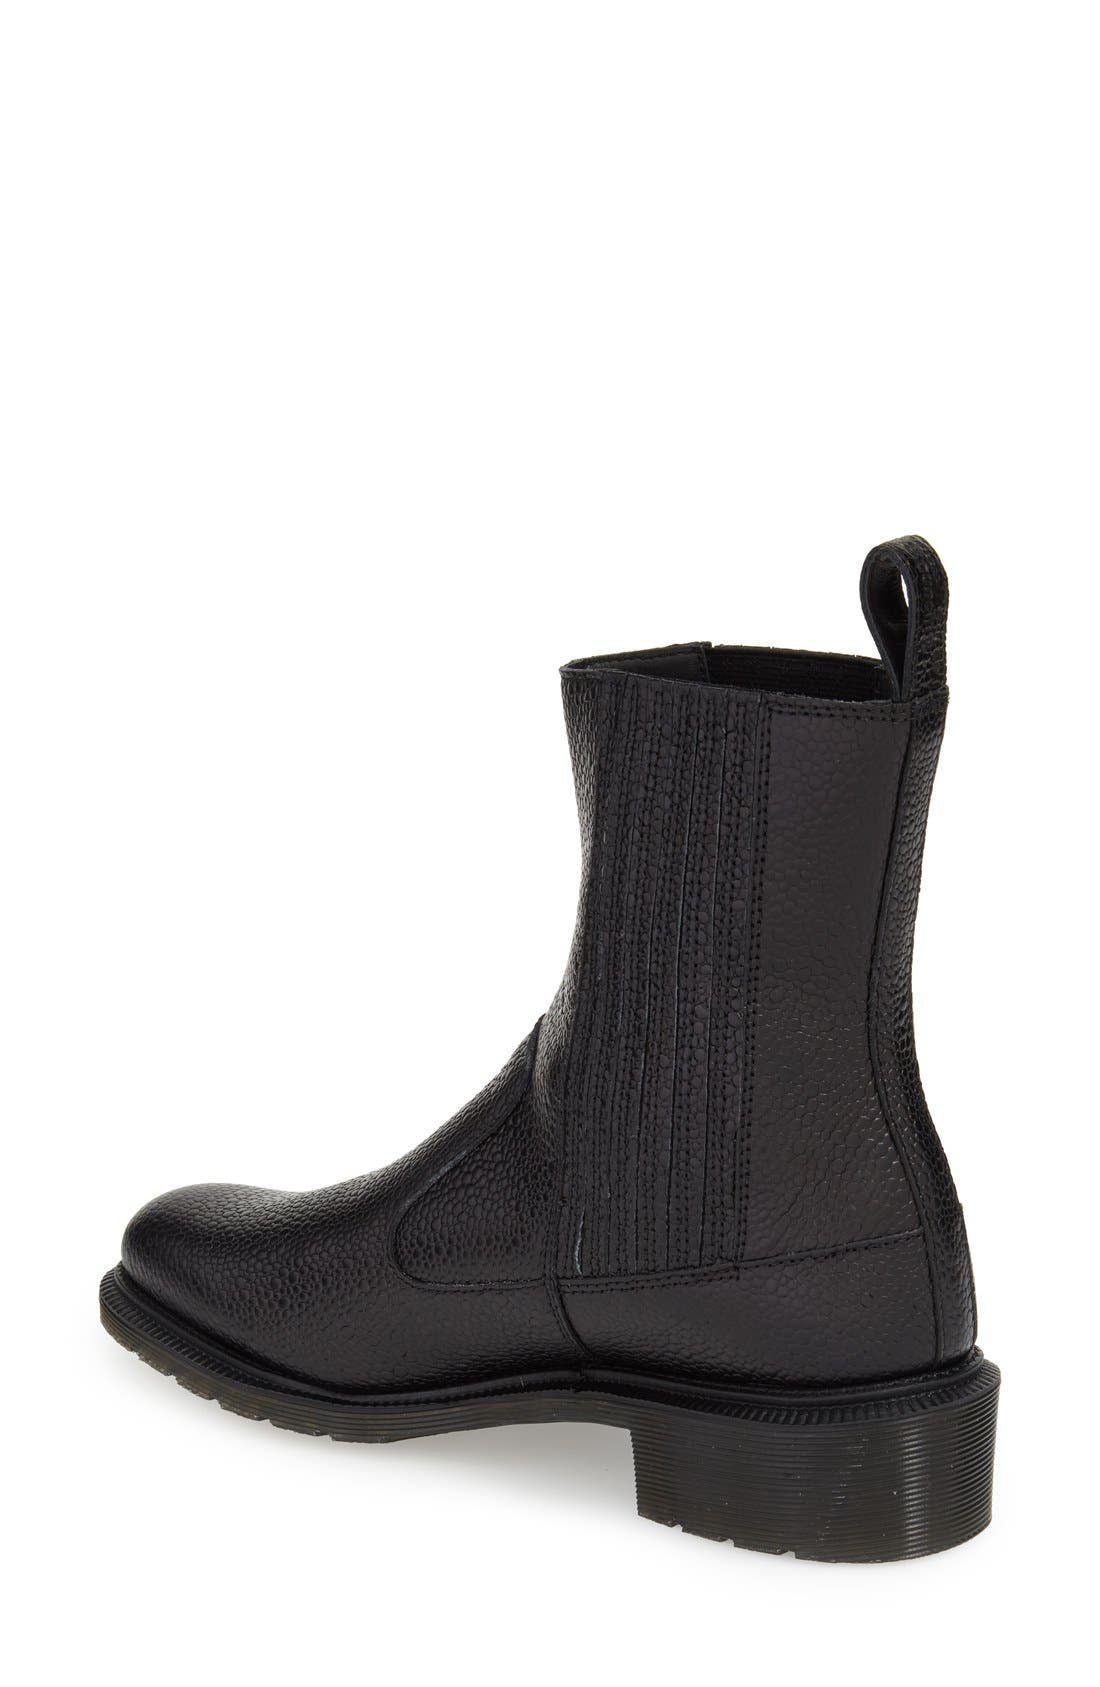 'Eleanore' Chelsea Boot,                             Alternate thumbnail 2, color,                             001